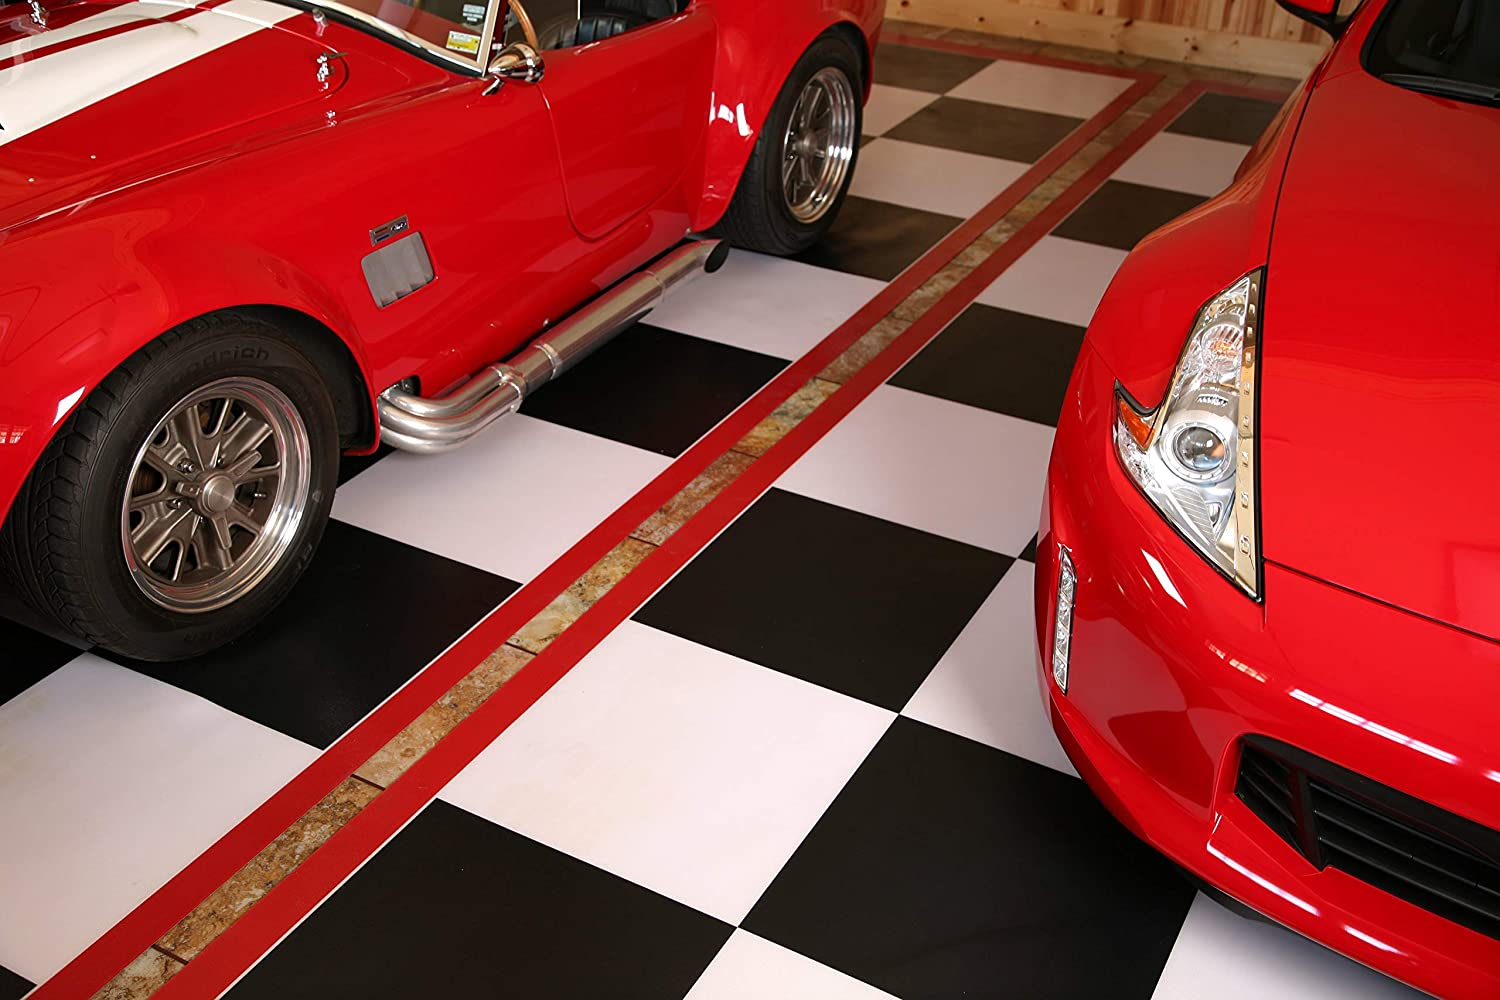 G-Floor 5x10 Imaged Parking Mat Black /& White Checkerboard with Red Border